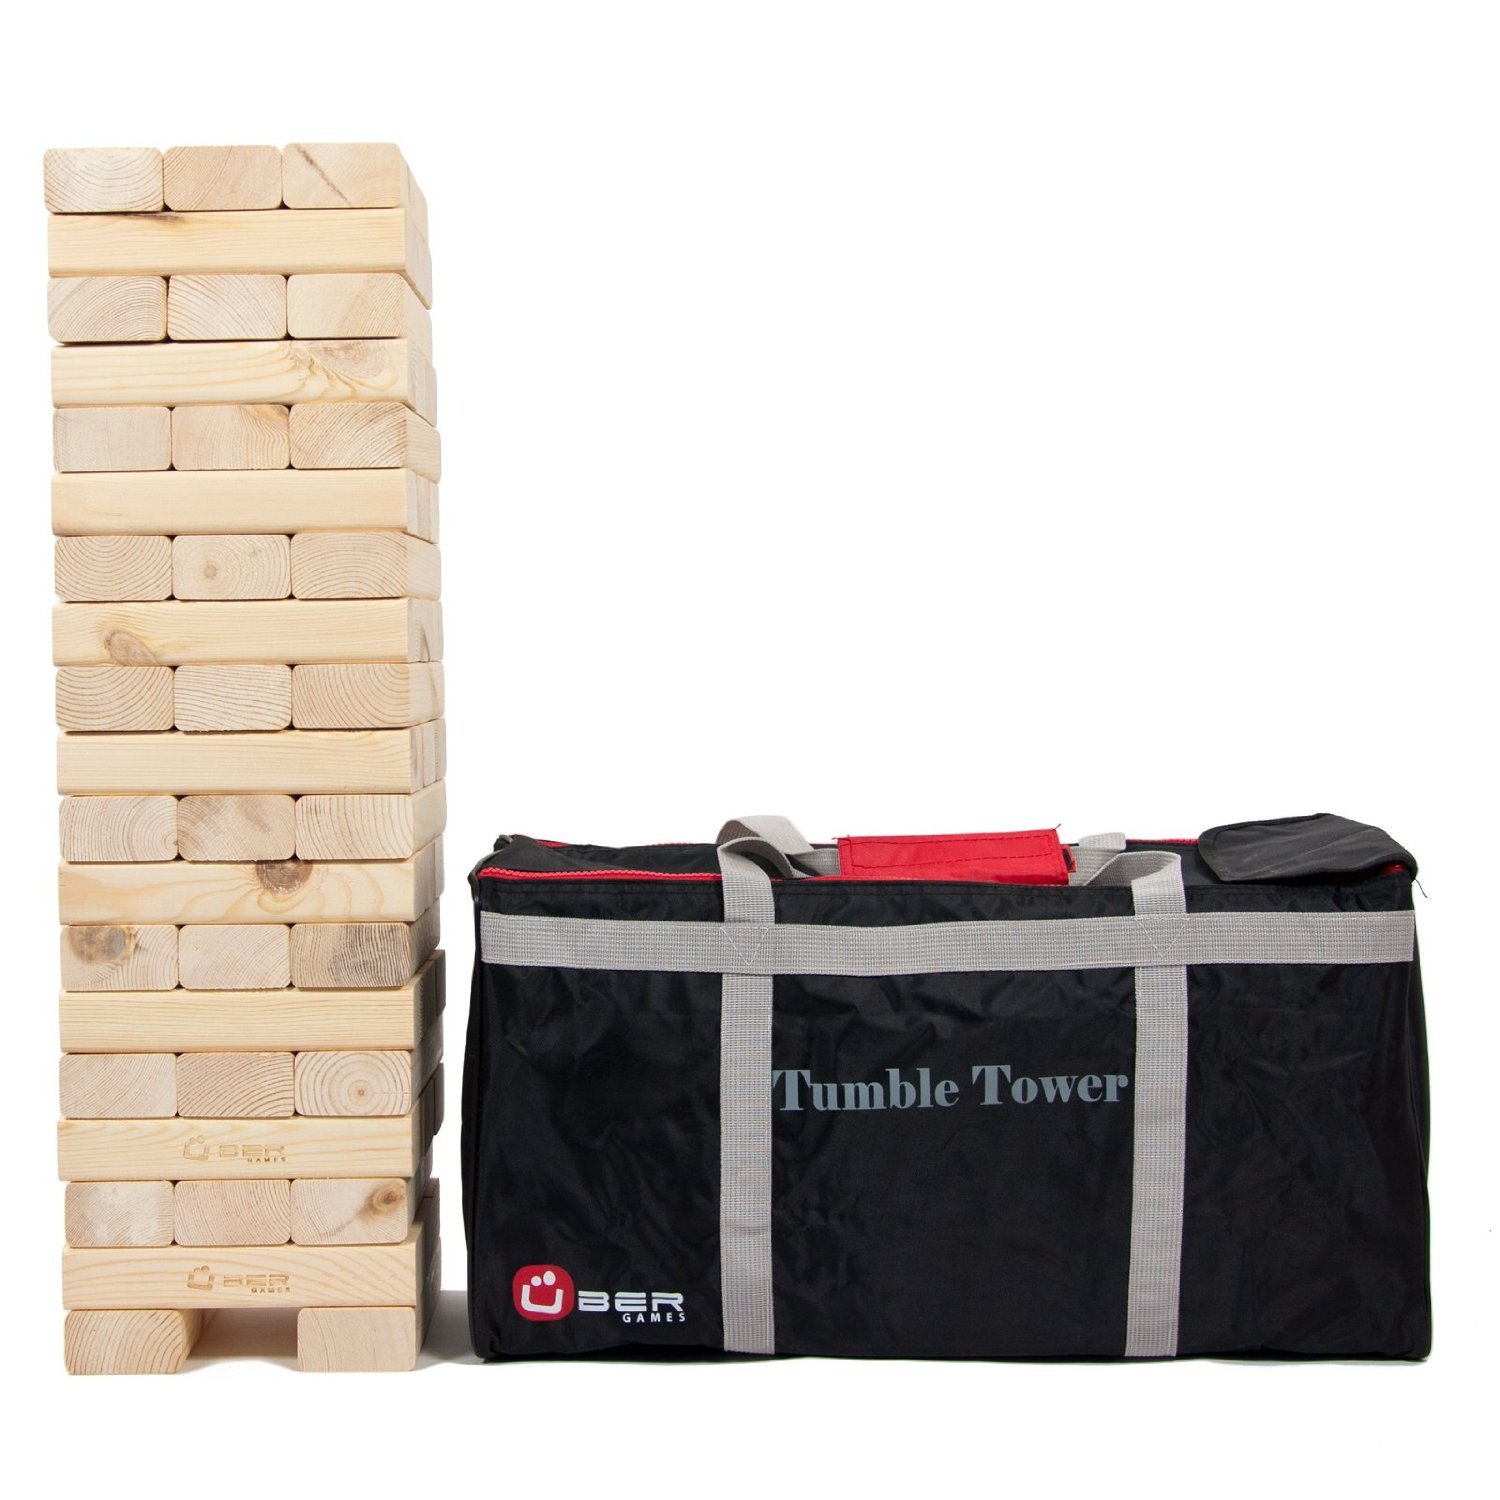 Uber Games Tumble Tower - Large pine - Grows from 2 feet to 3.5 feet